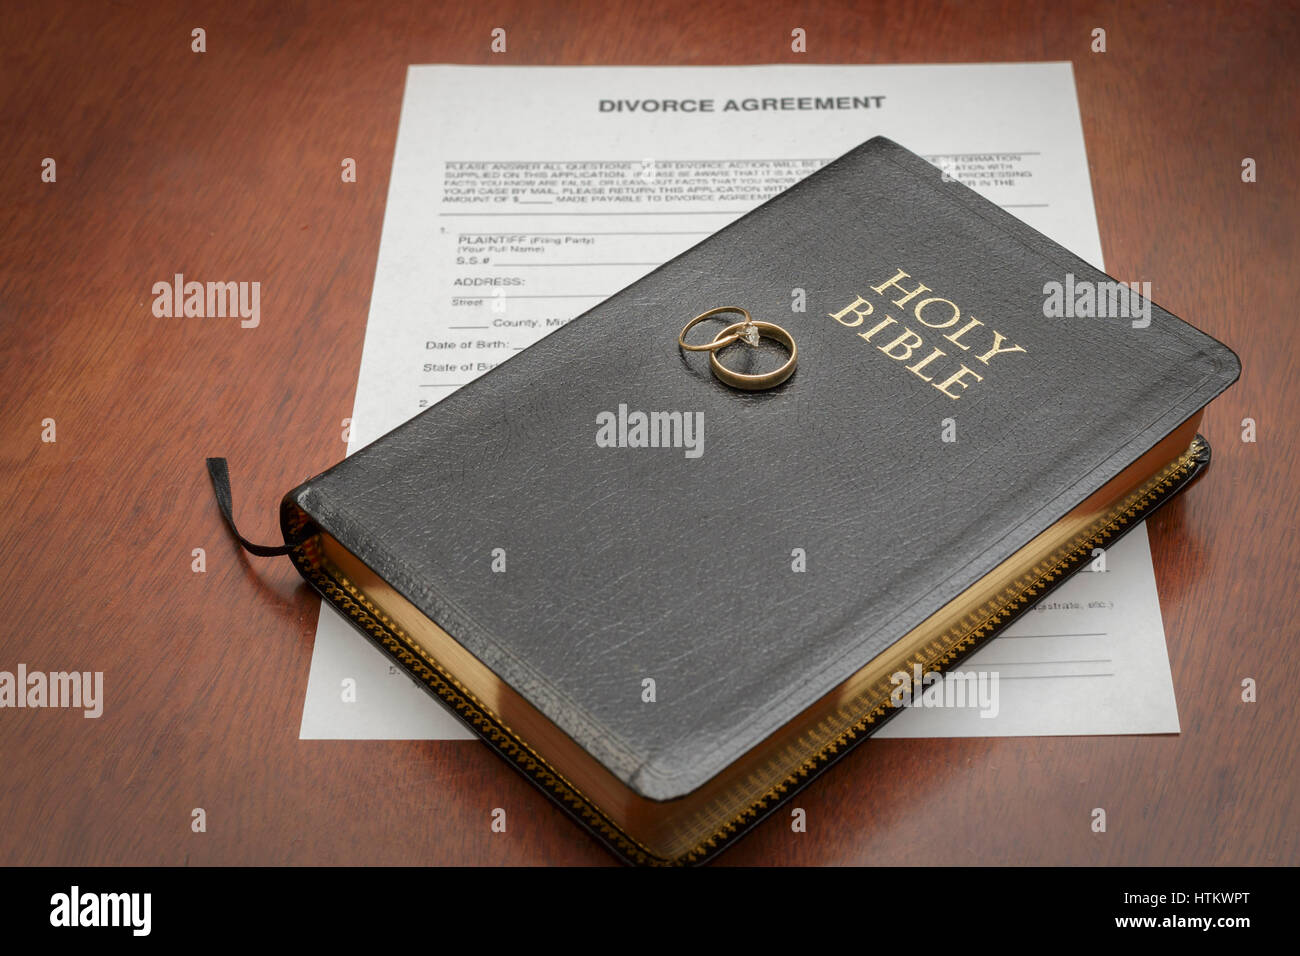 Sign Papers Stockfotos & Sign Papers Bilder - Seite 15 - Alamy